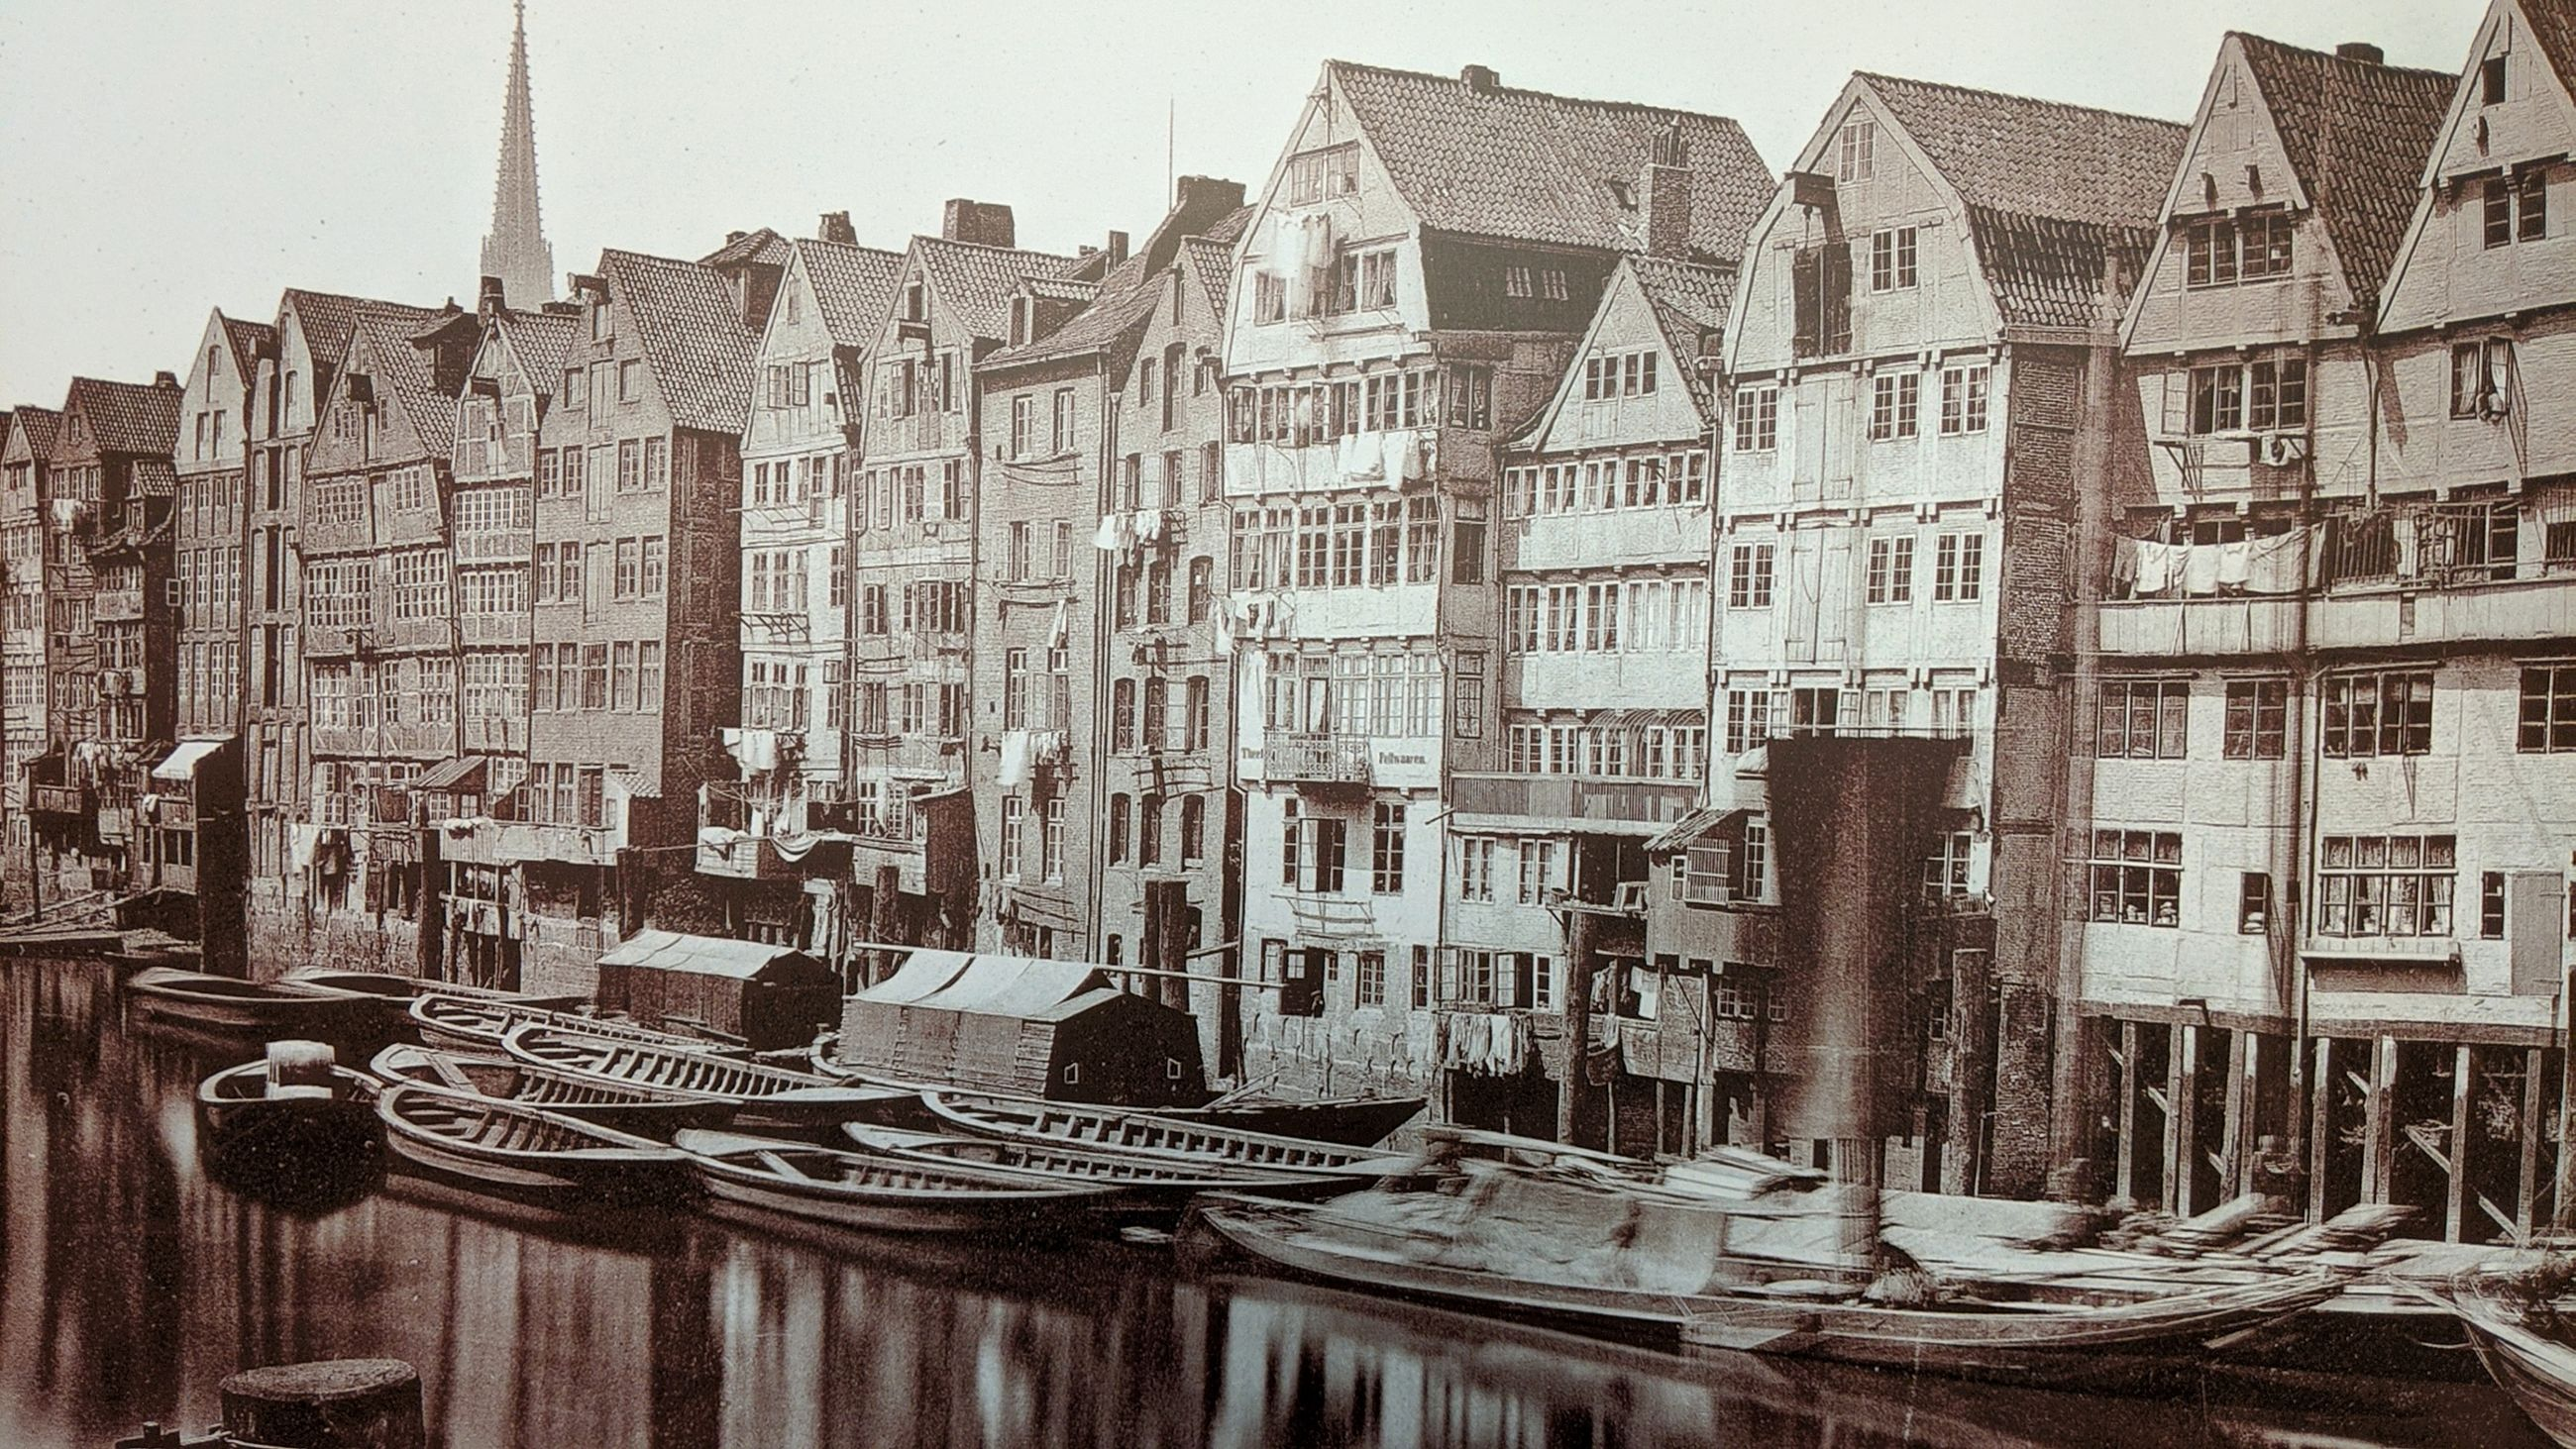 architecture, building exterior, built structure, water, nautical vessel, black and white, building, waterway, cityscape, city, mode of transportation, transportation, boat, sky, travel destinations, no people, nature, residential district, vehicle, monochrome photography, watercraft, travel, drawing, house, ship, day, monochrome, canal, outdoors, tourism, art, sketch